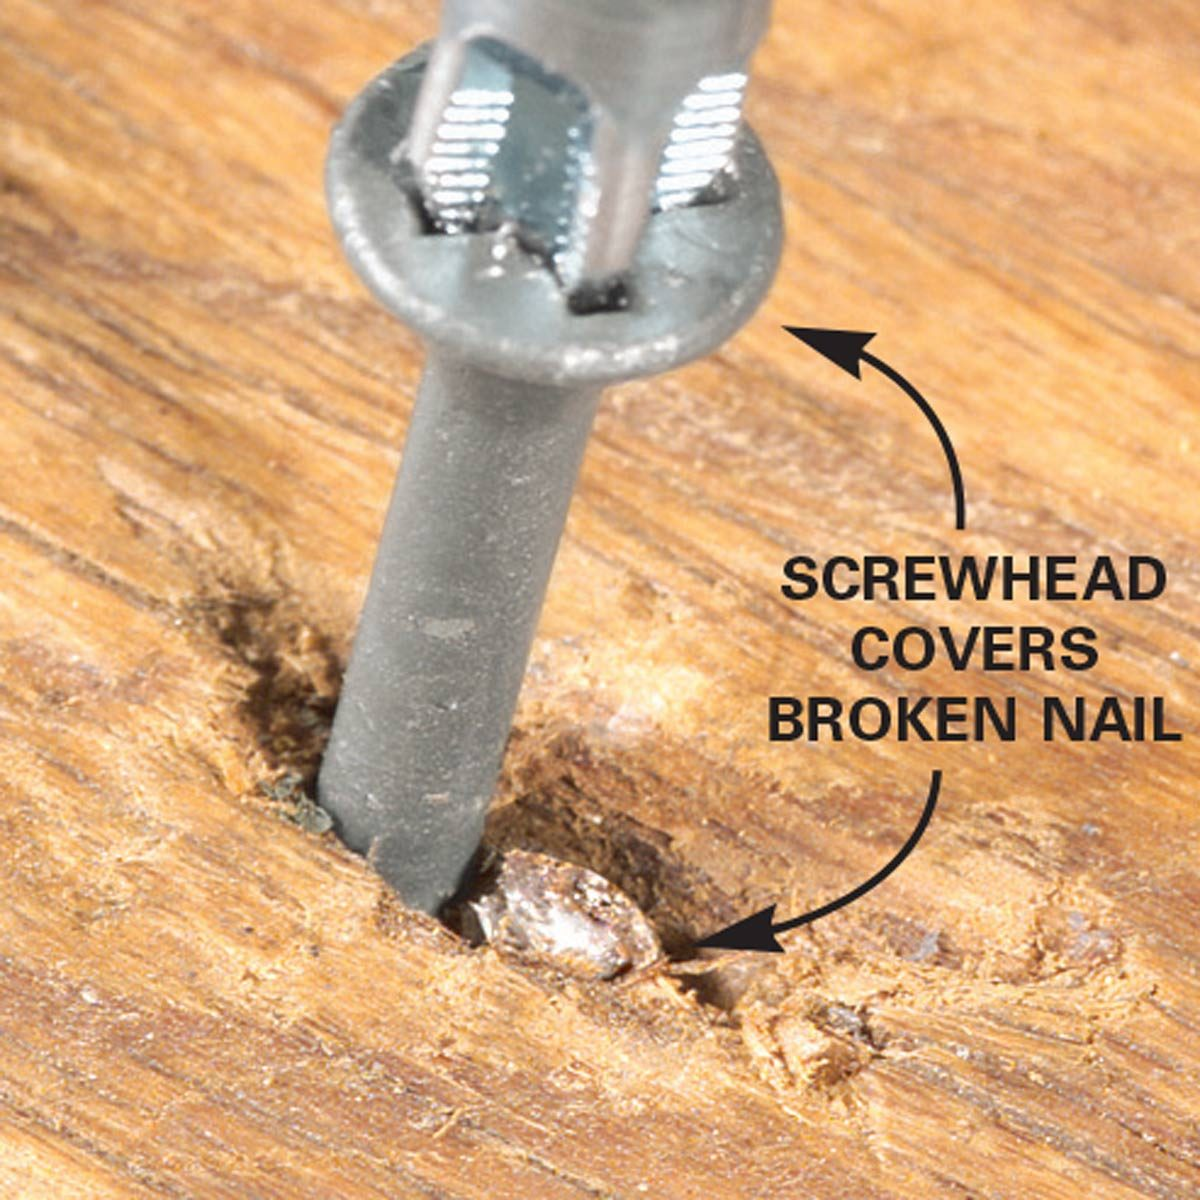 Replace loose, popped nails